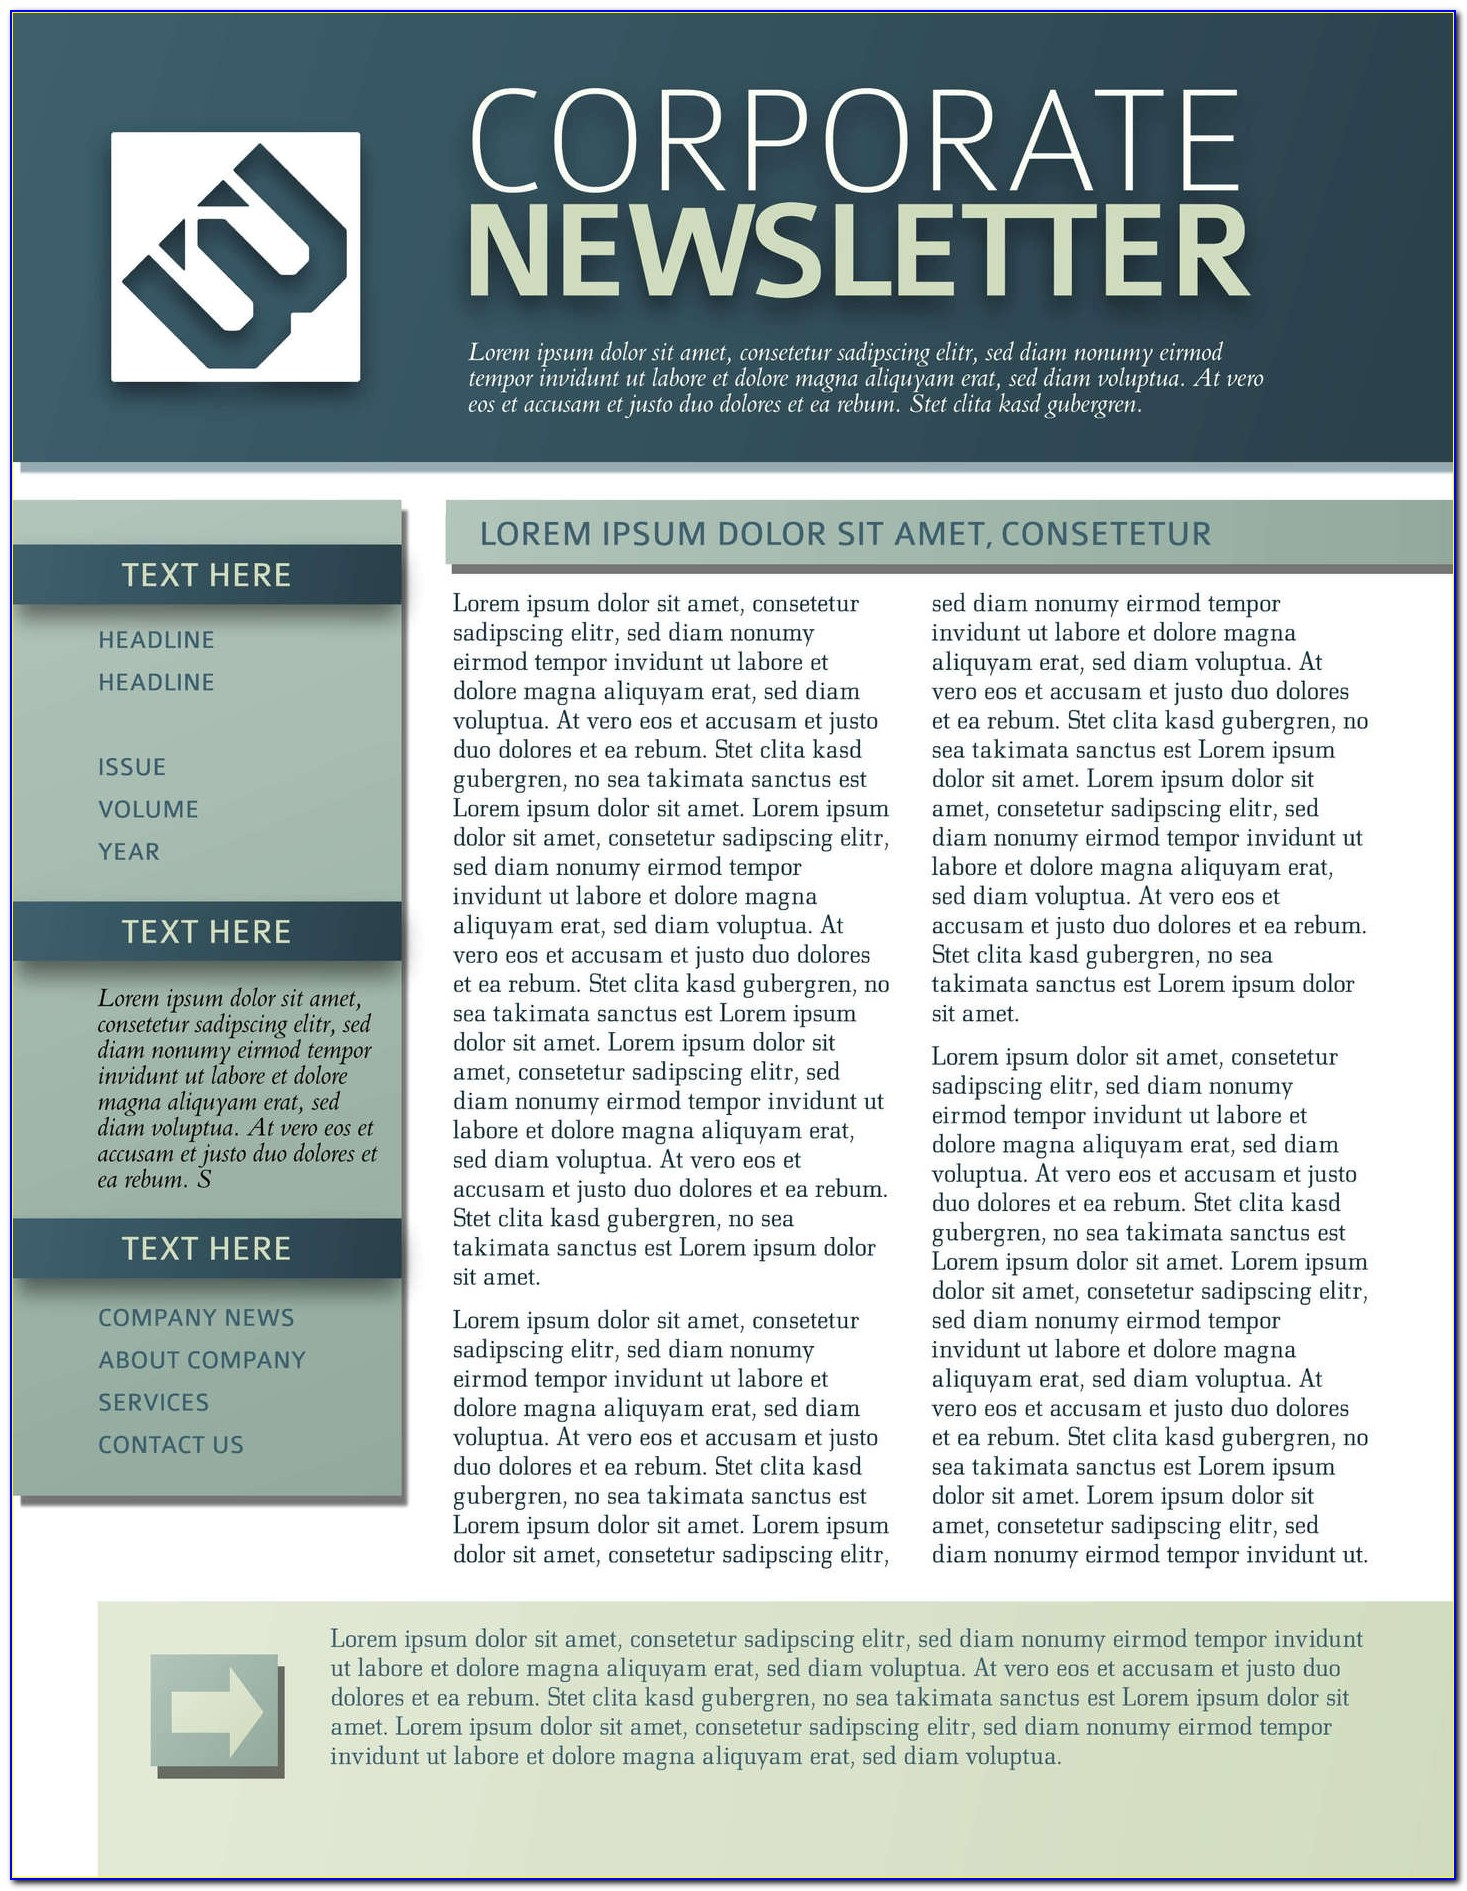 Corporate Newsletter Templates Pdf